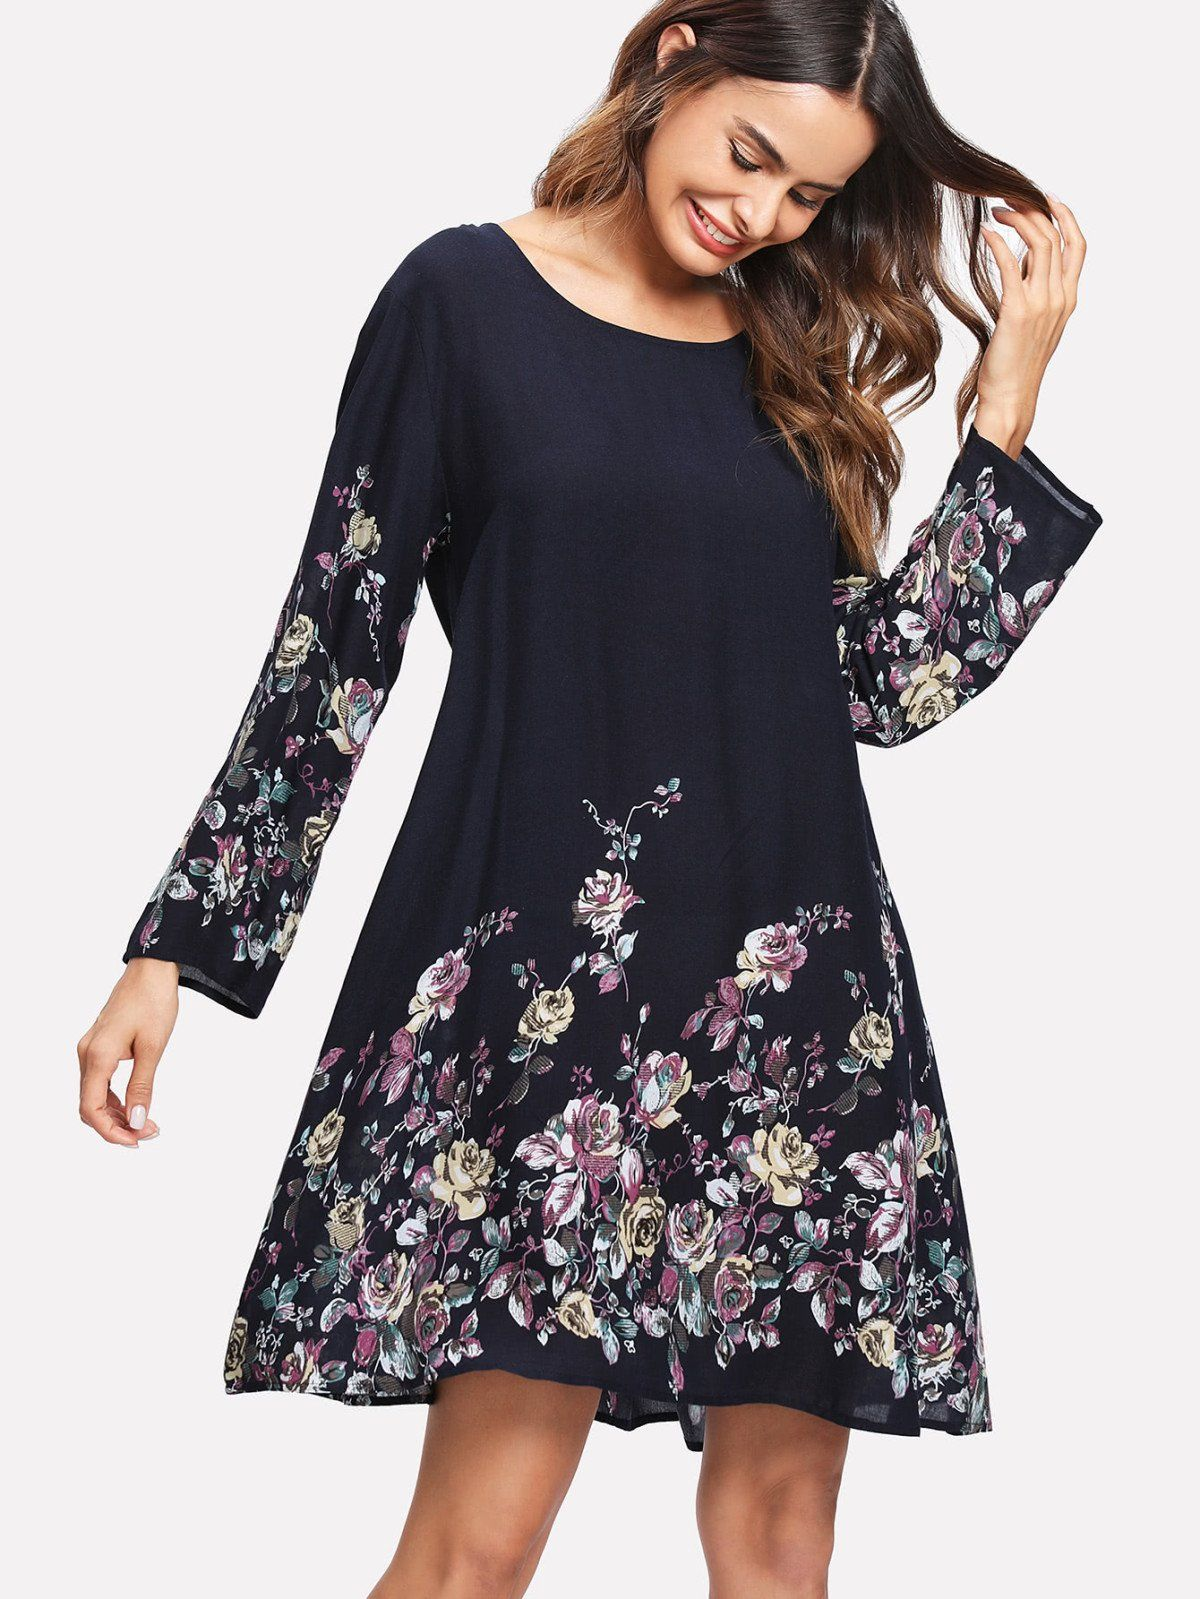 Long sleeve dresses to wear to a wedding  Rose Print Tunic Dress  Tunic designs Tunics and Casual wear